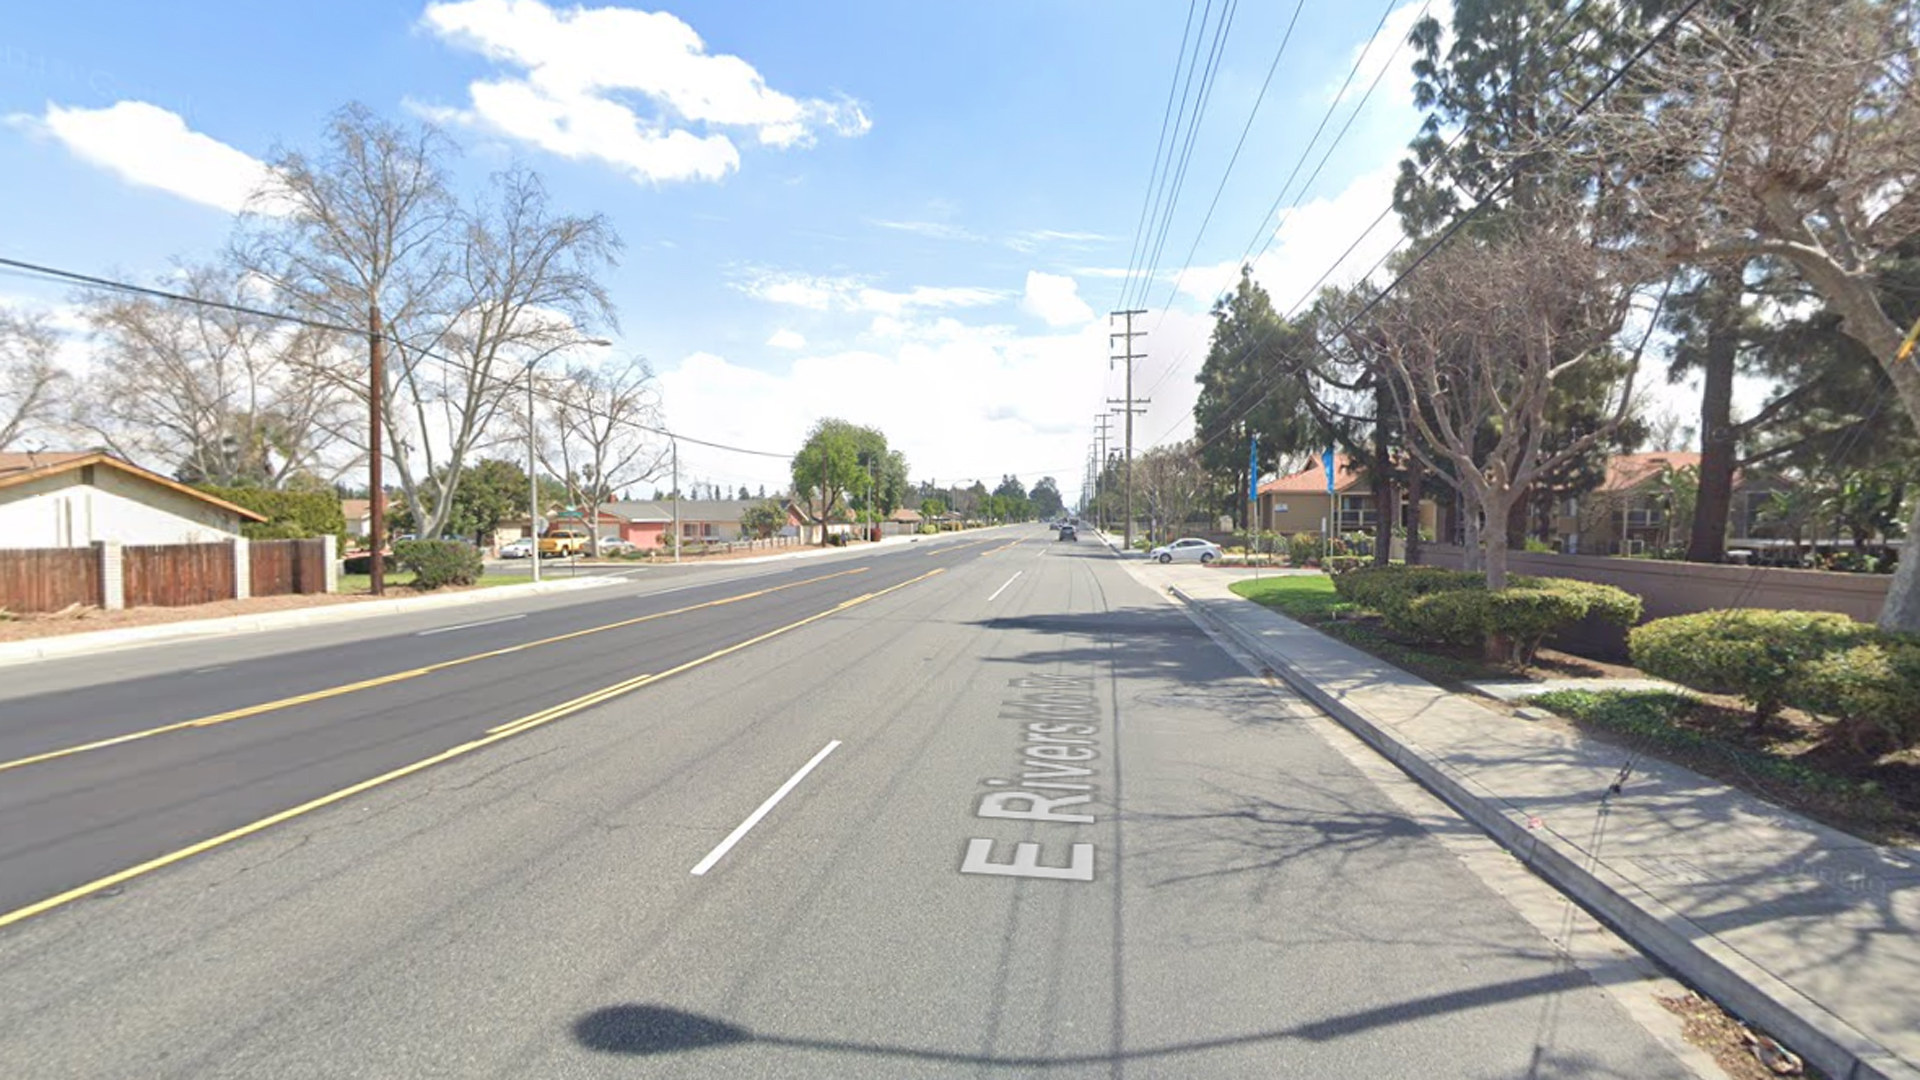 The 2800 block of East Riverside Drive in Ontario, as viewed in a Google Street View image.